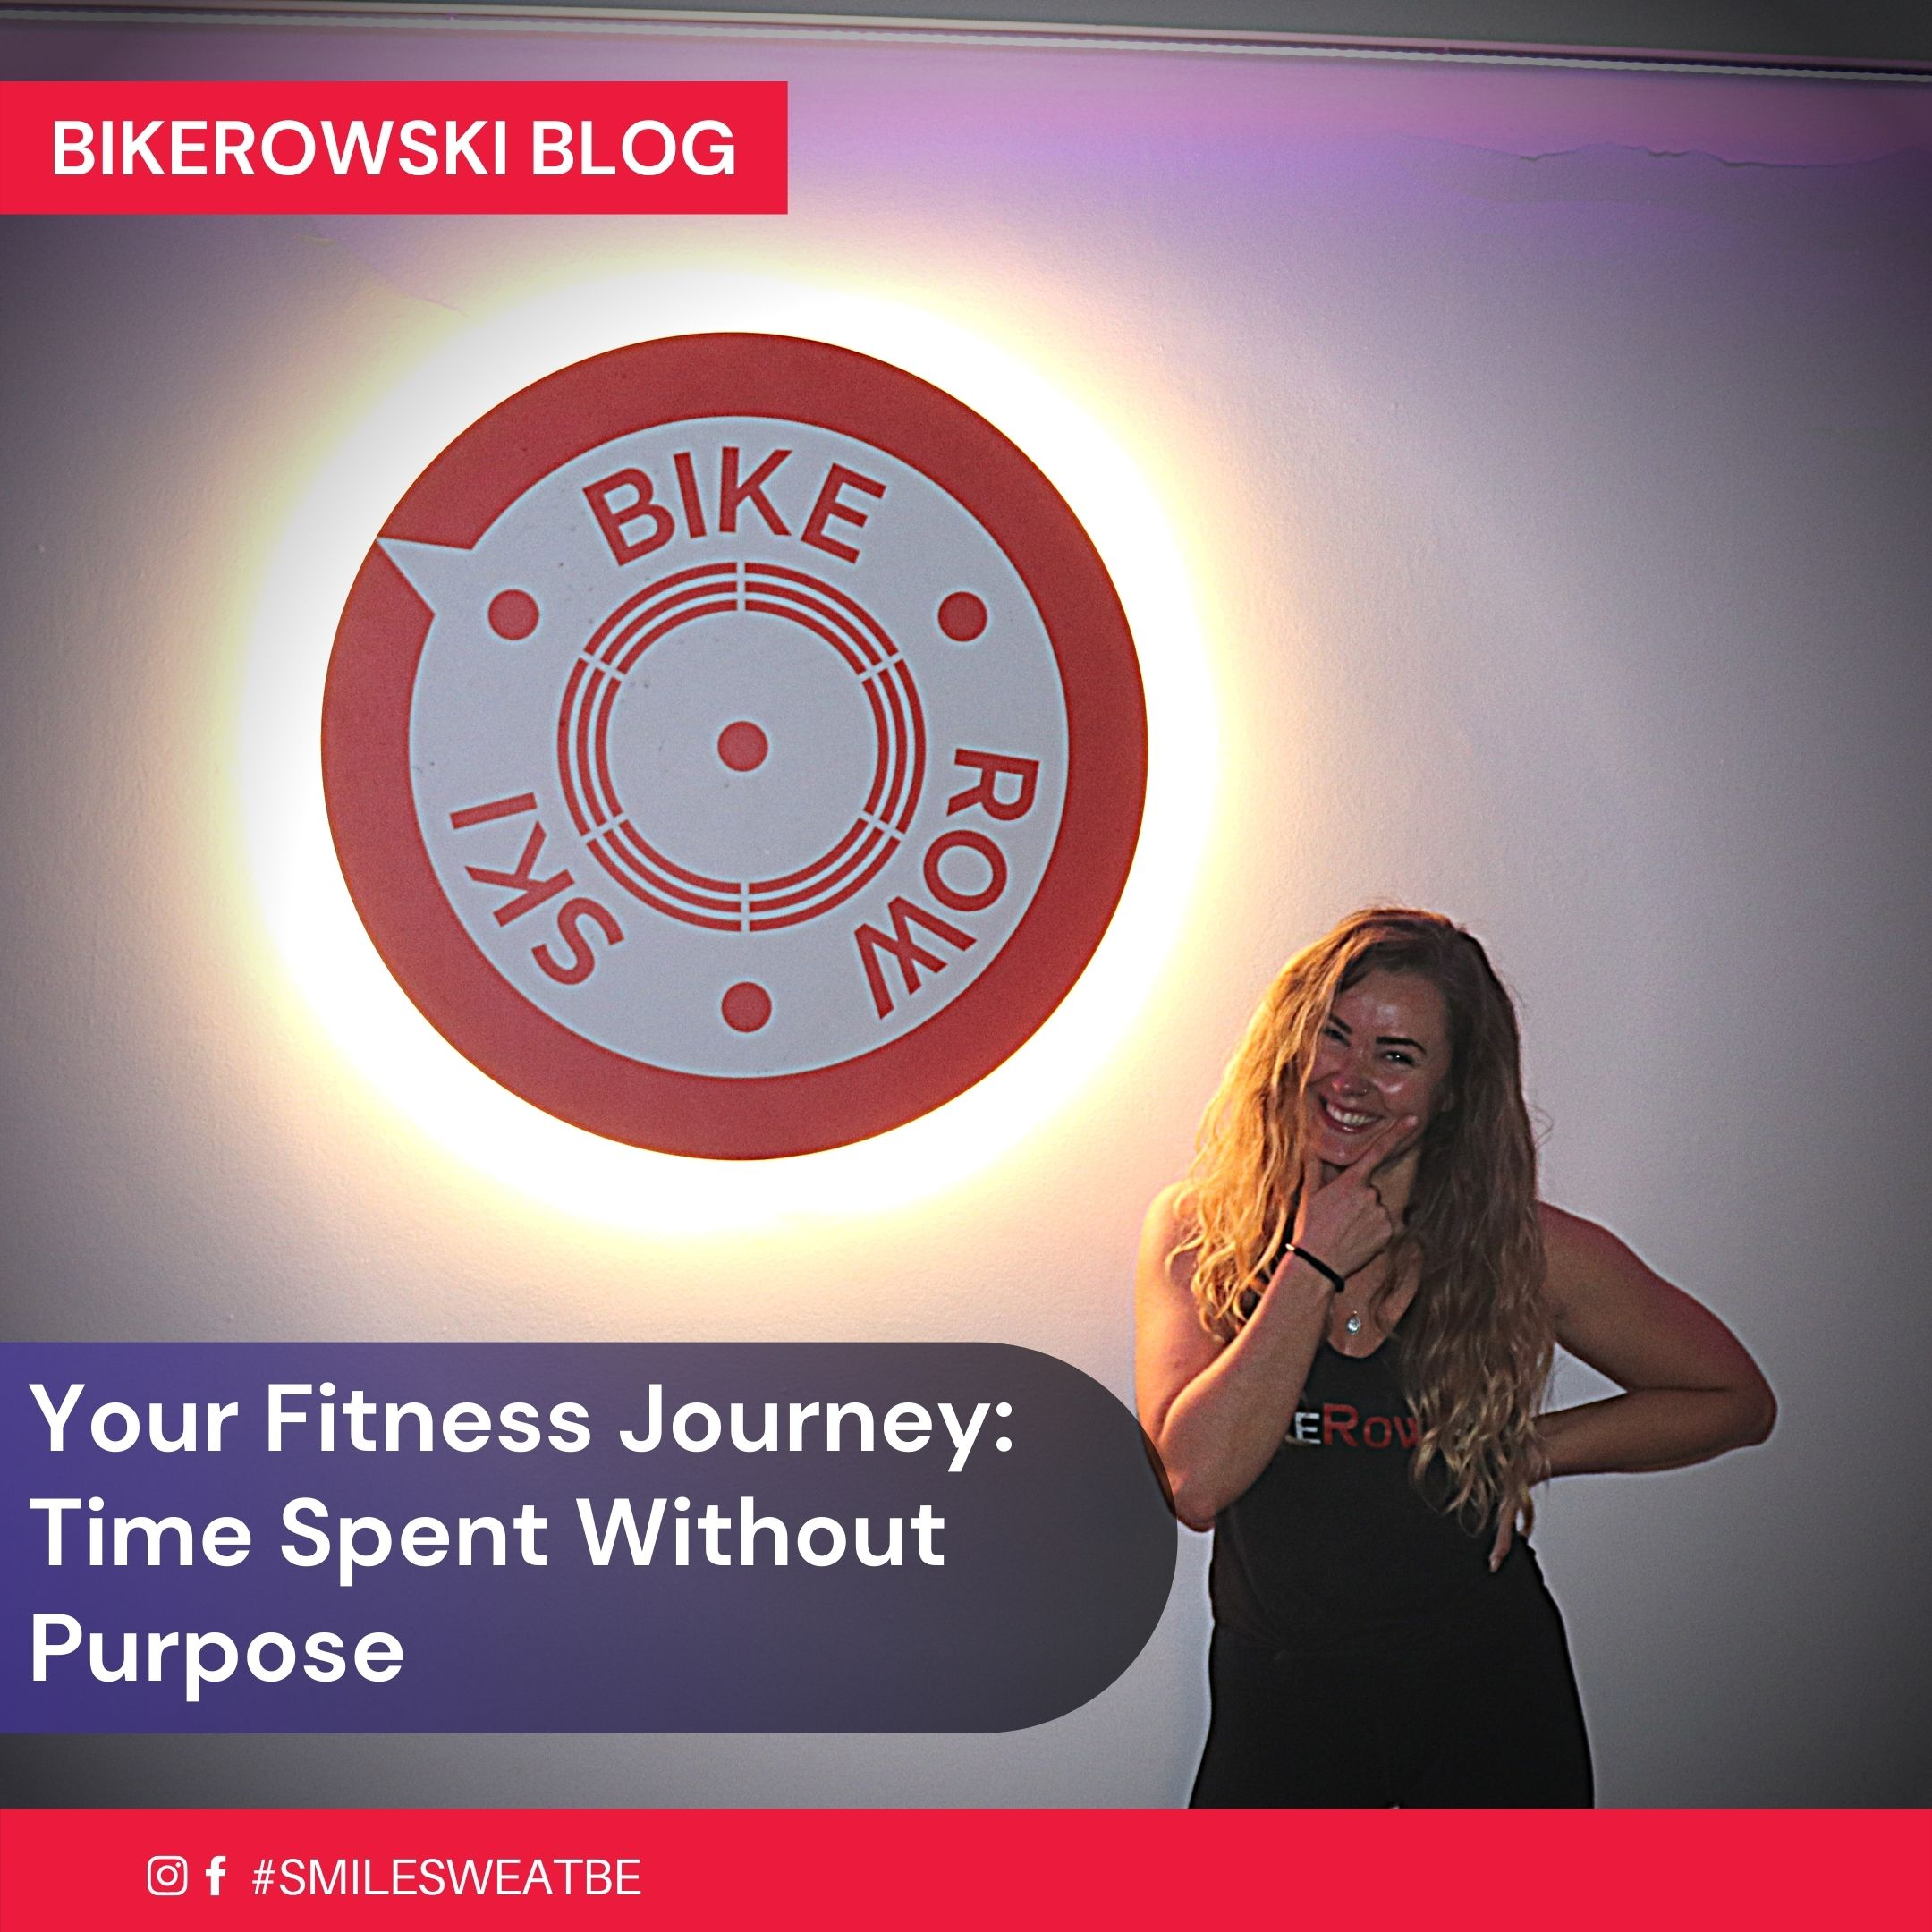 Your Fitness Journey: Play - Time Spent Without Purpose